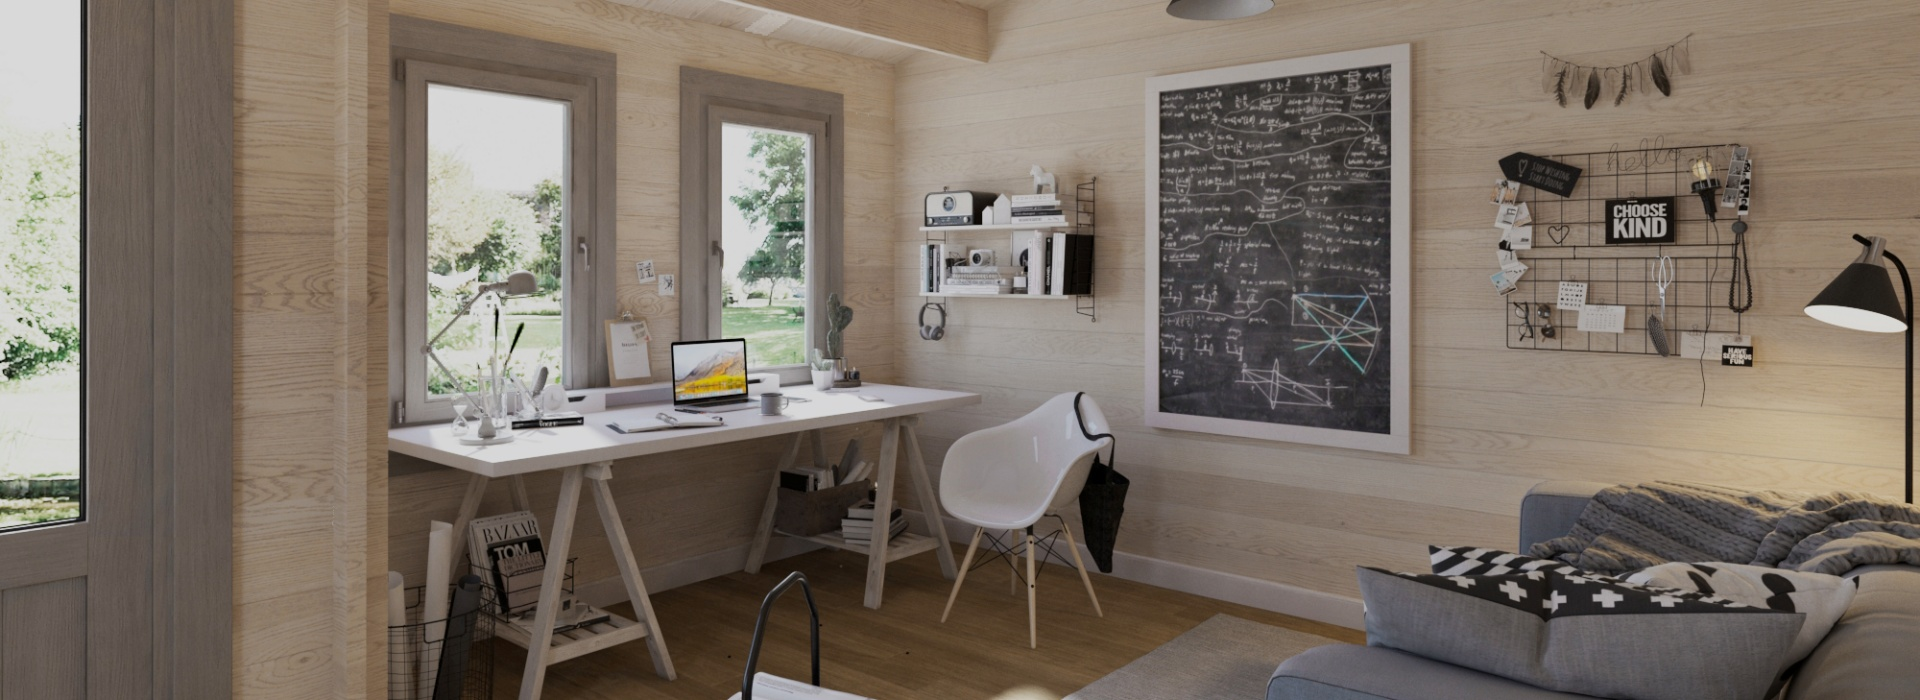 Garden home offices - Working from home